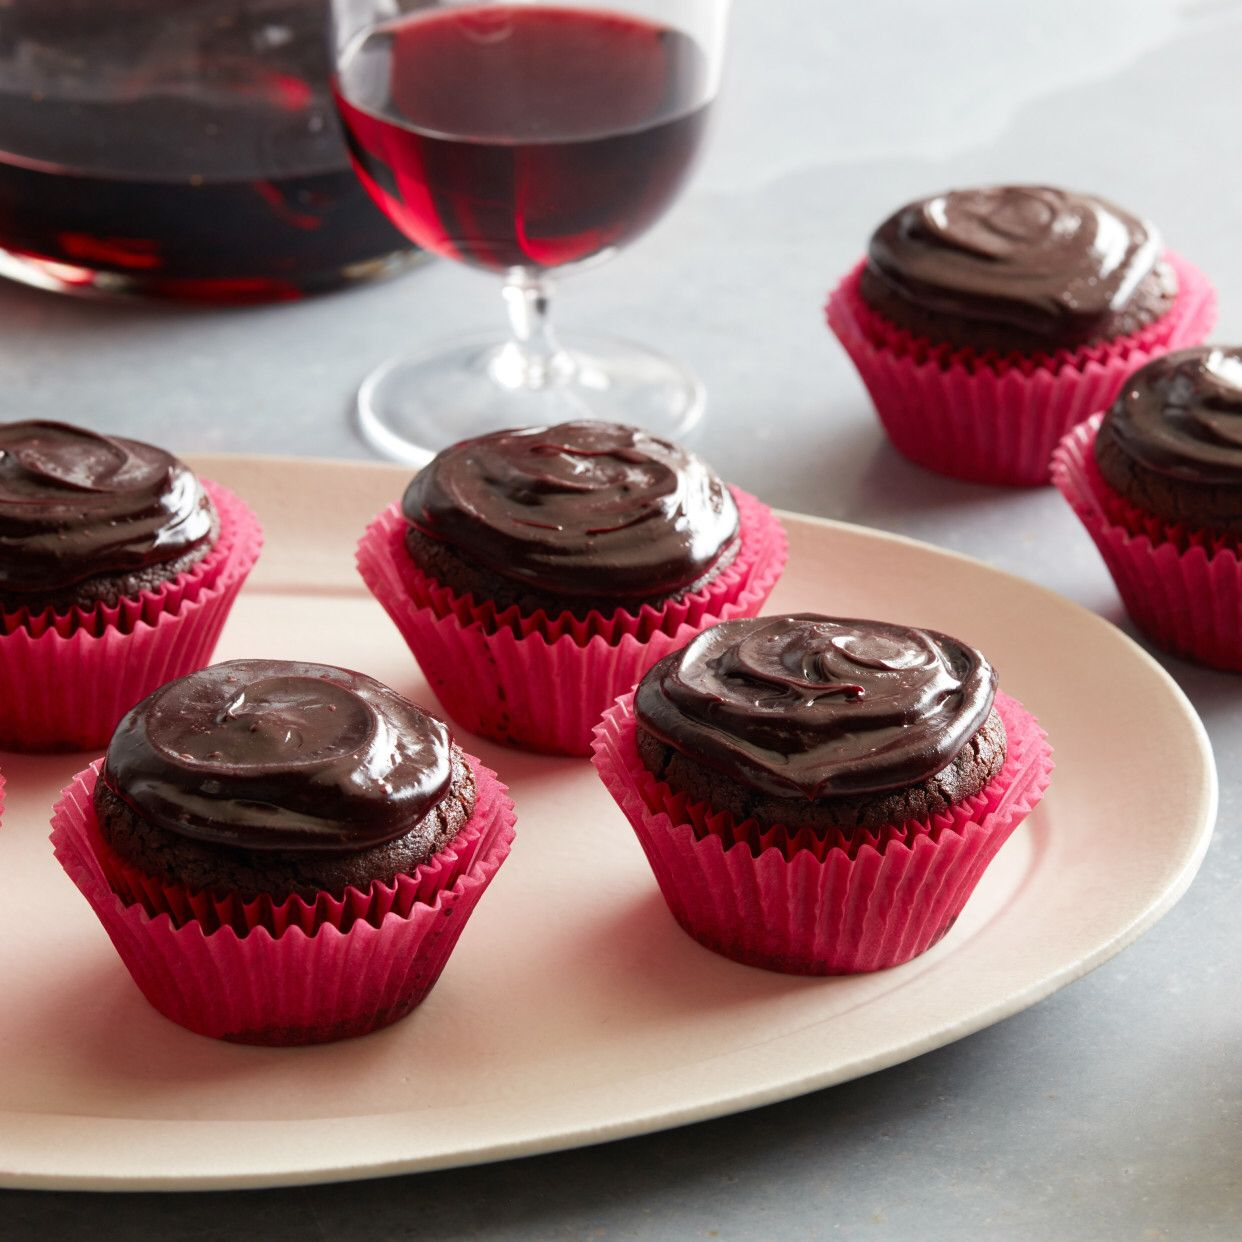 Red Wine Chocolate Cupcakes Recipe In 2020 Food Network Recipes Cupcake Recipes Chocolate Chocolate Cupcakes